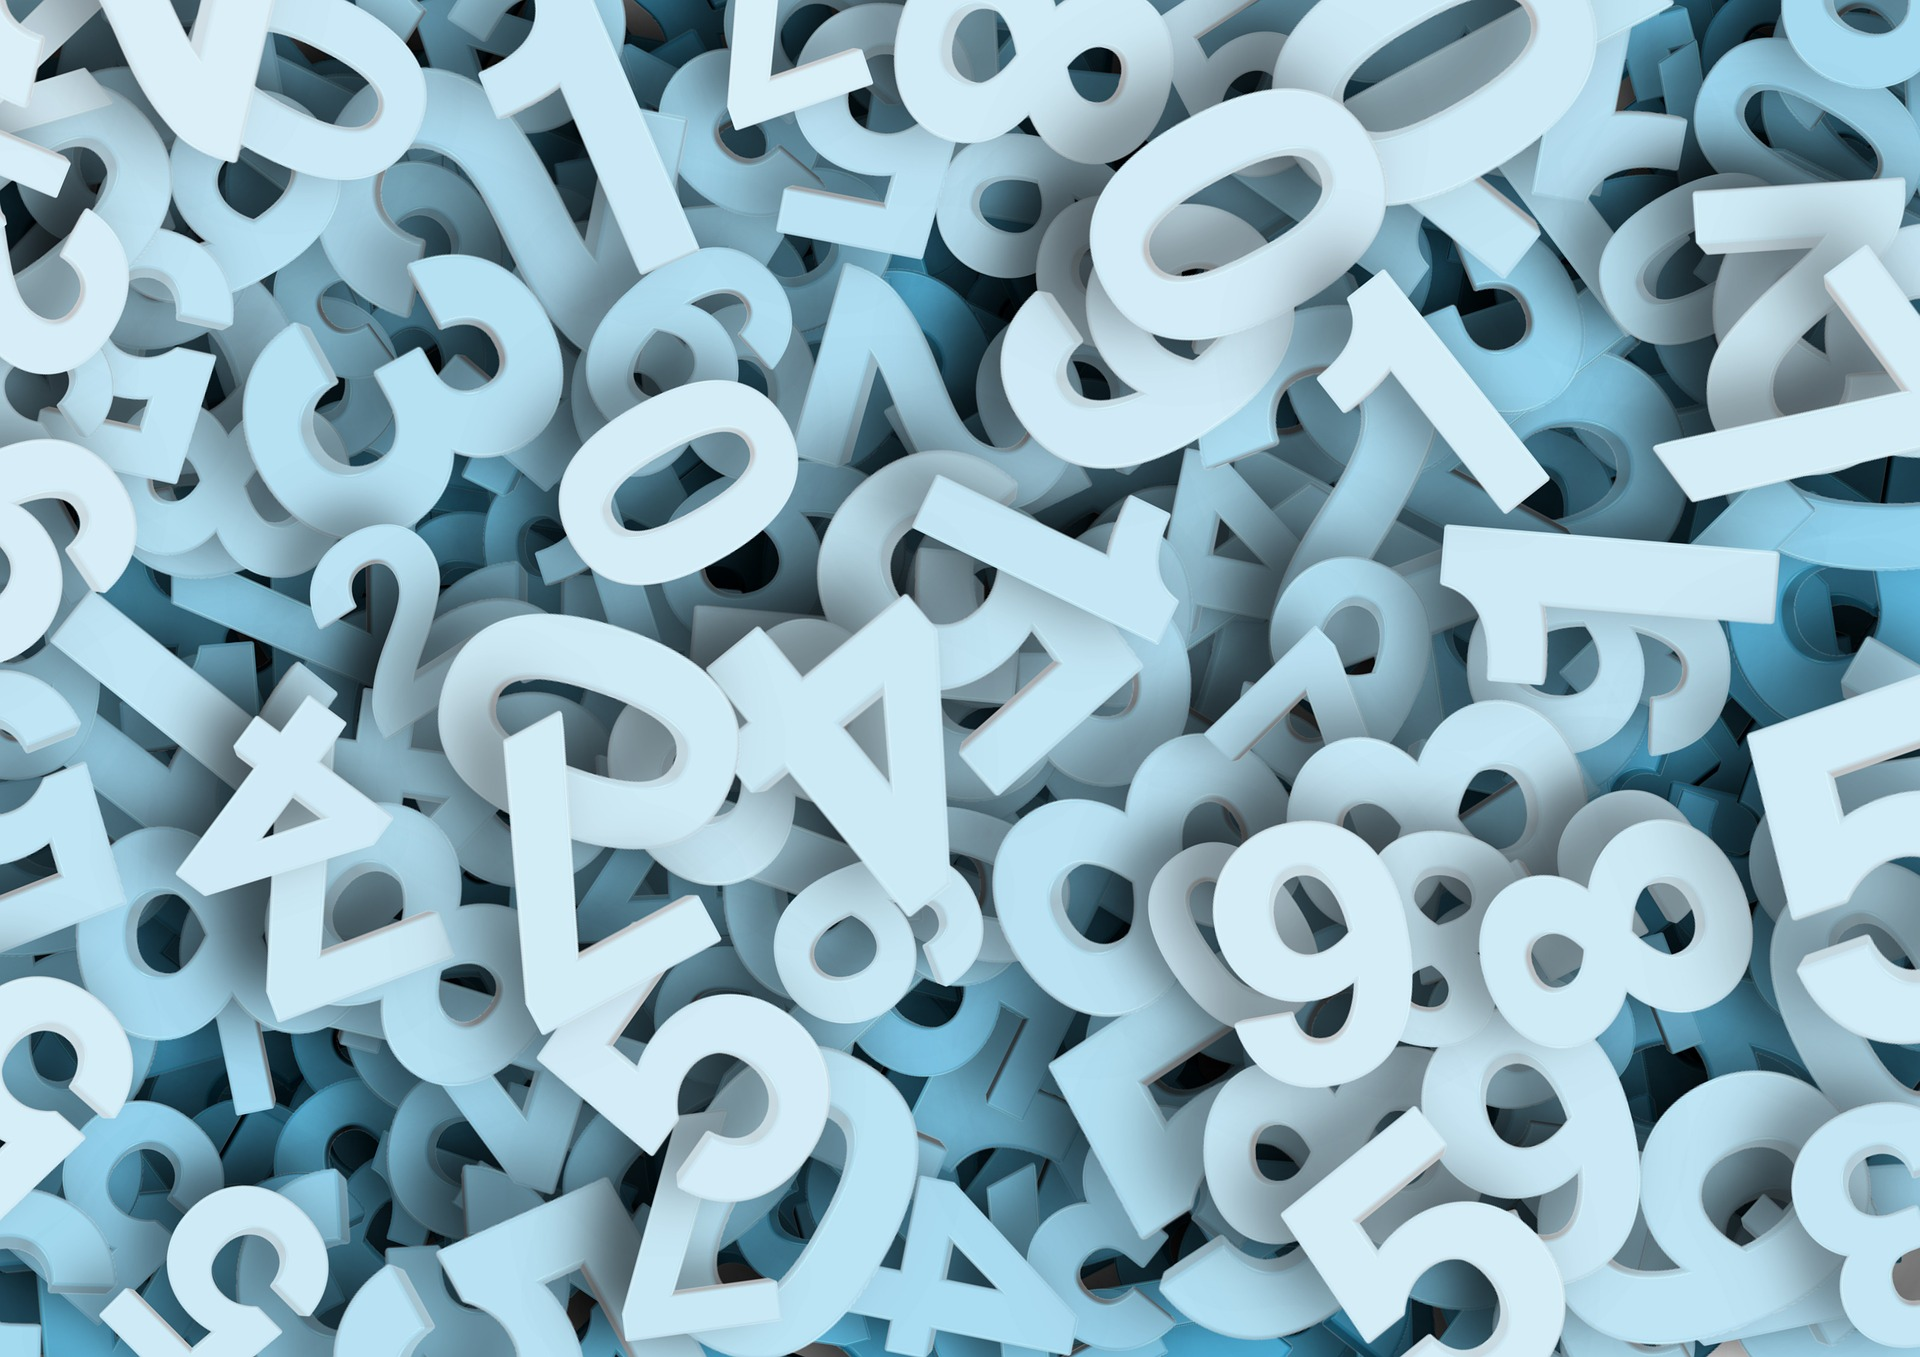 Eyezak and his Riddle App ask a question about numbers. This image has numbers scattered around.